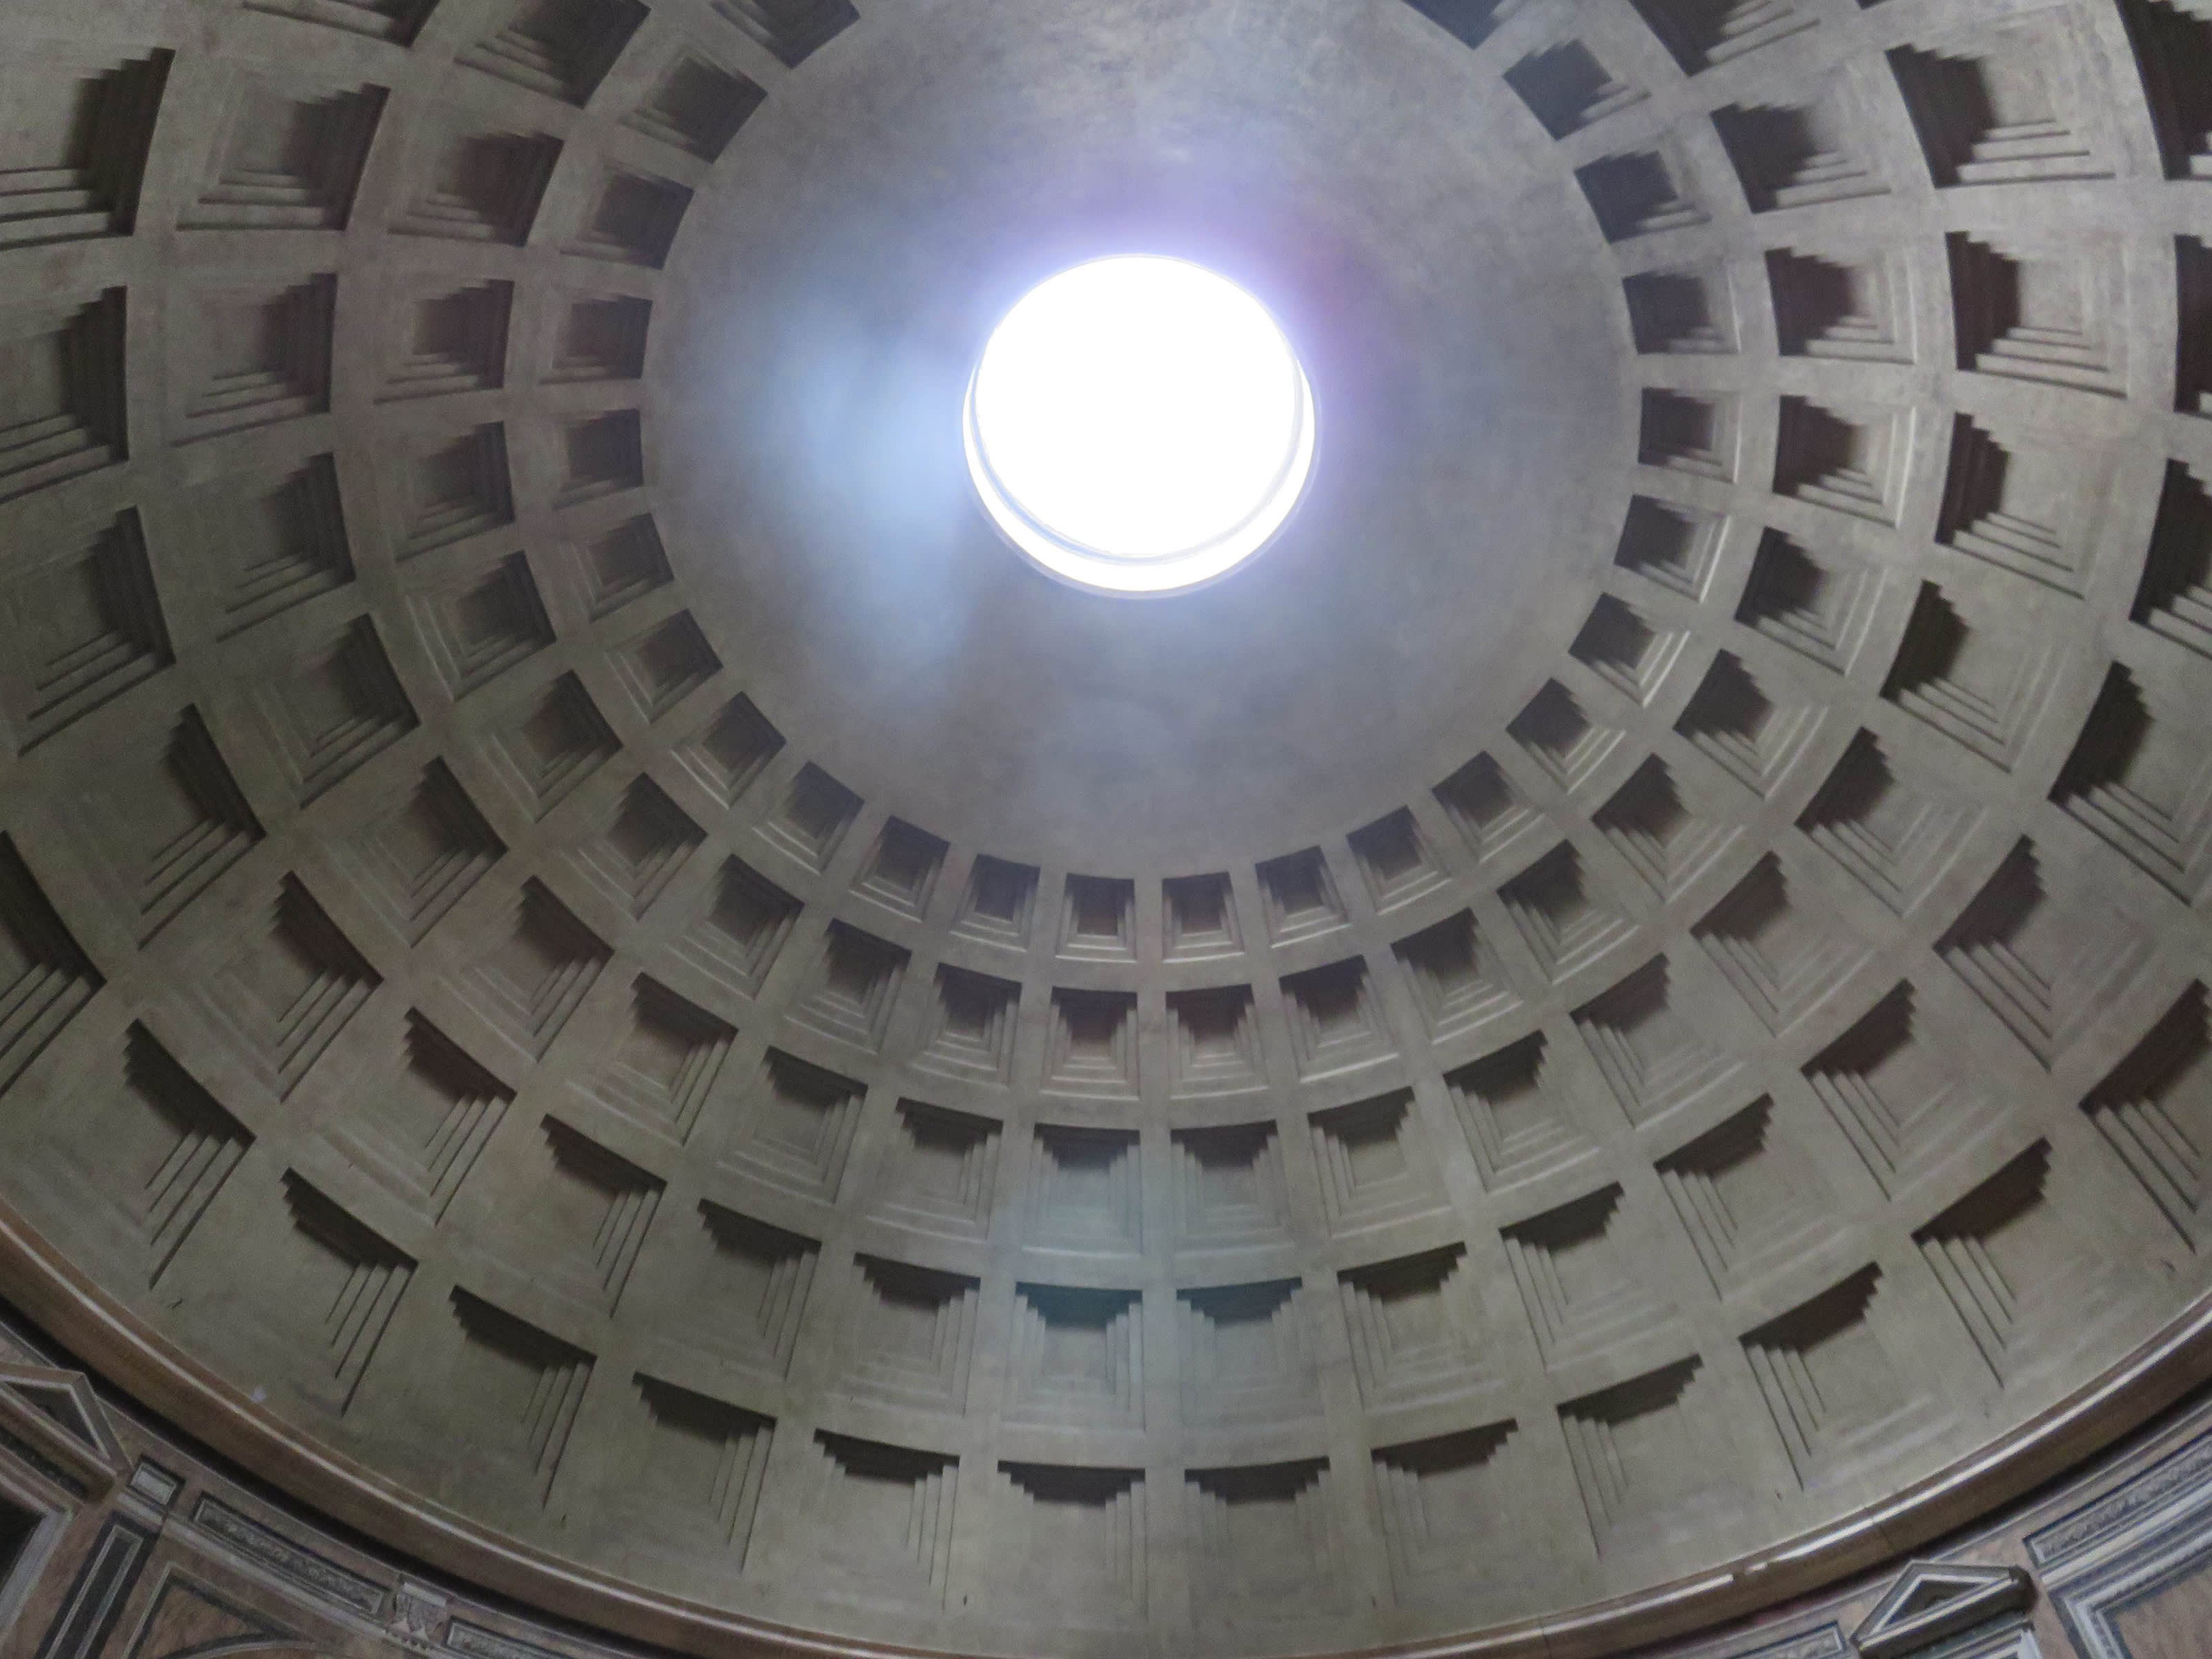 THE PANTHEON IS AN EXCELLENT EXAMPLE OF THE ENDURING QUALITY OF ROMAN CONCRETES USING VOLCANIC ASH.